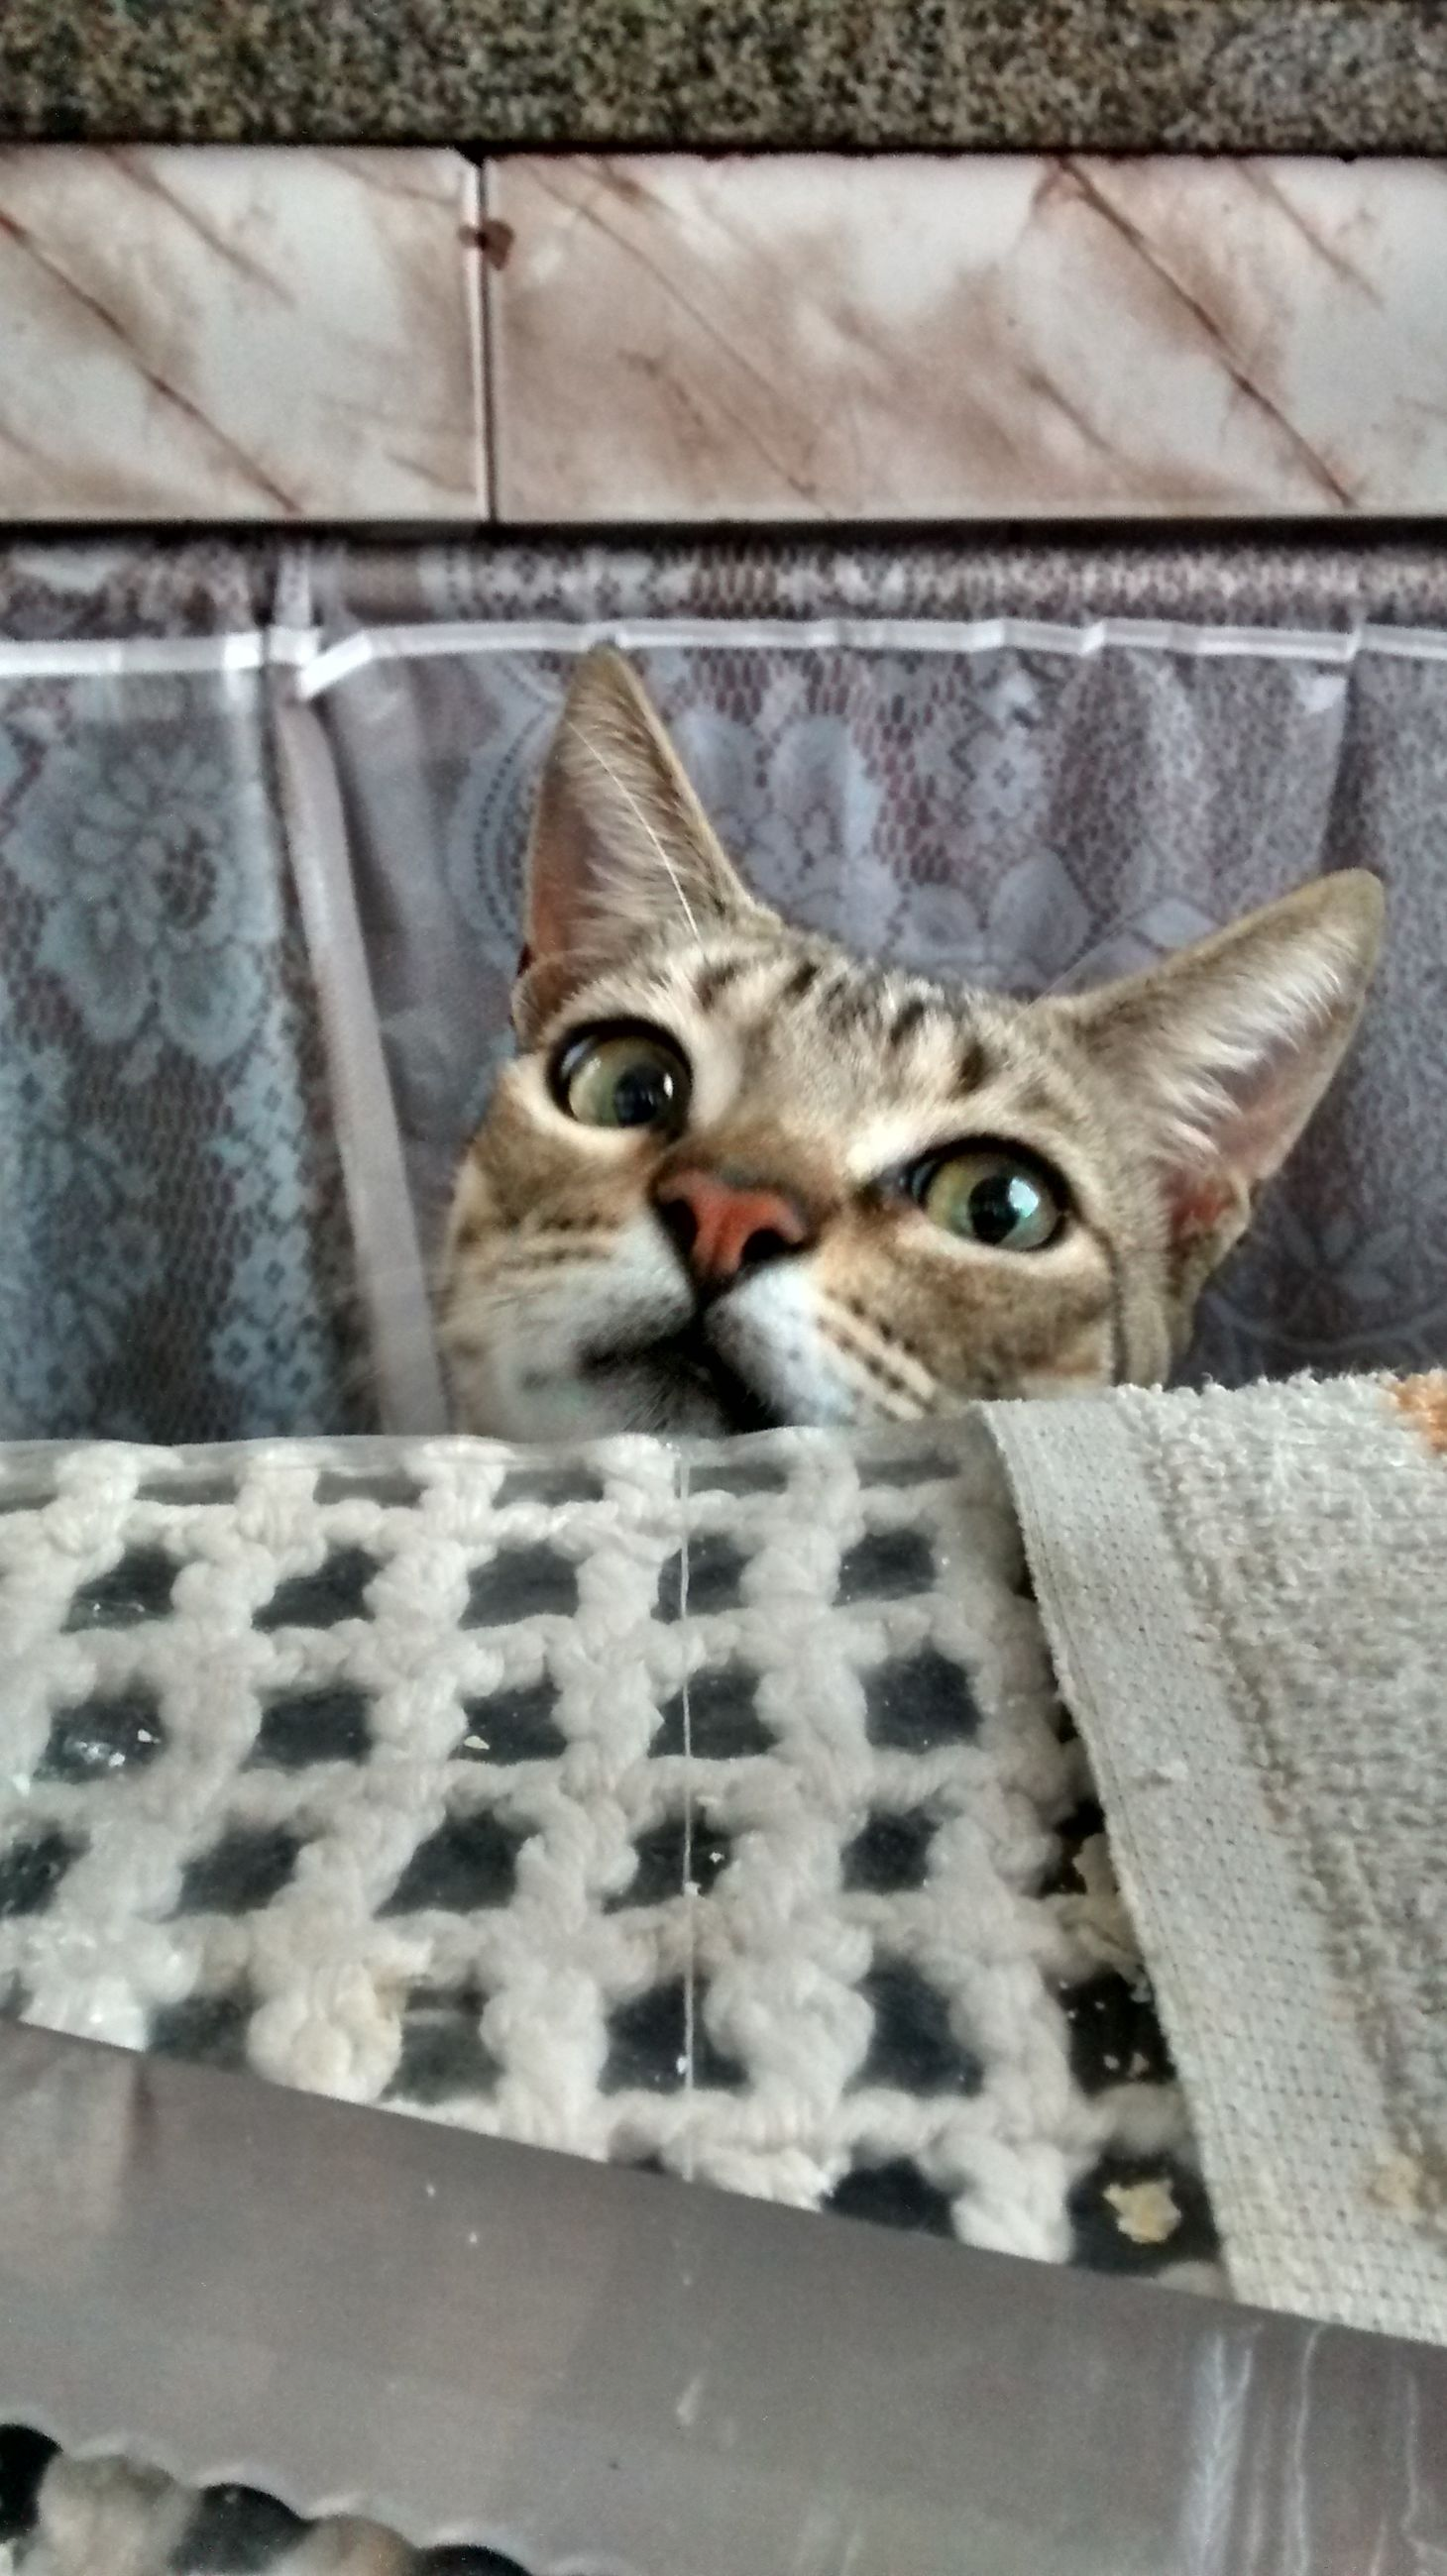 animal themes, domestic cat, one animal, pets, cat, domestic animals, feline, mammal, looking at camera, portrait, whisker, indoors, animal head, close-up, staring, alertness, no people, animal eye, wall - building feature, day